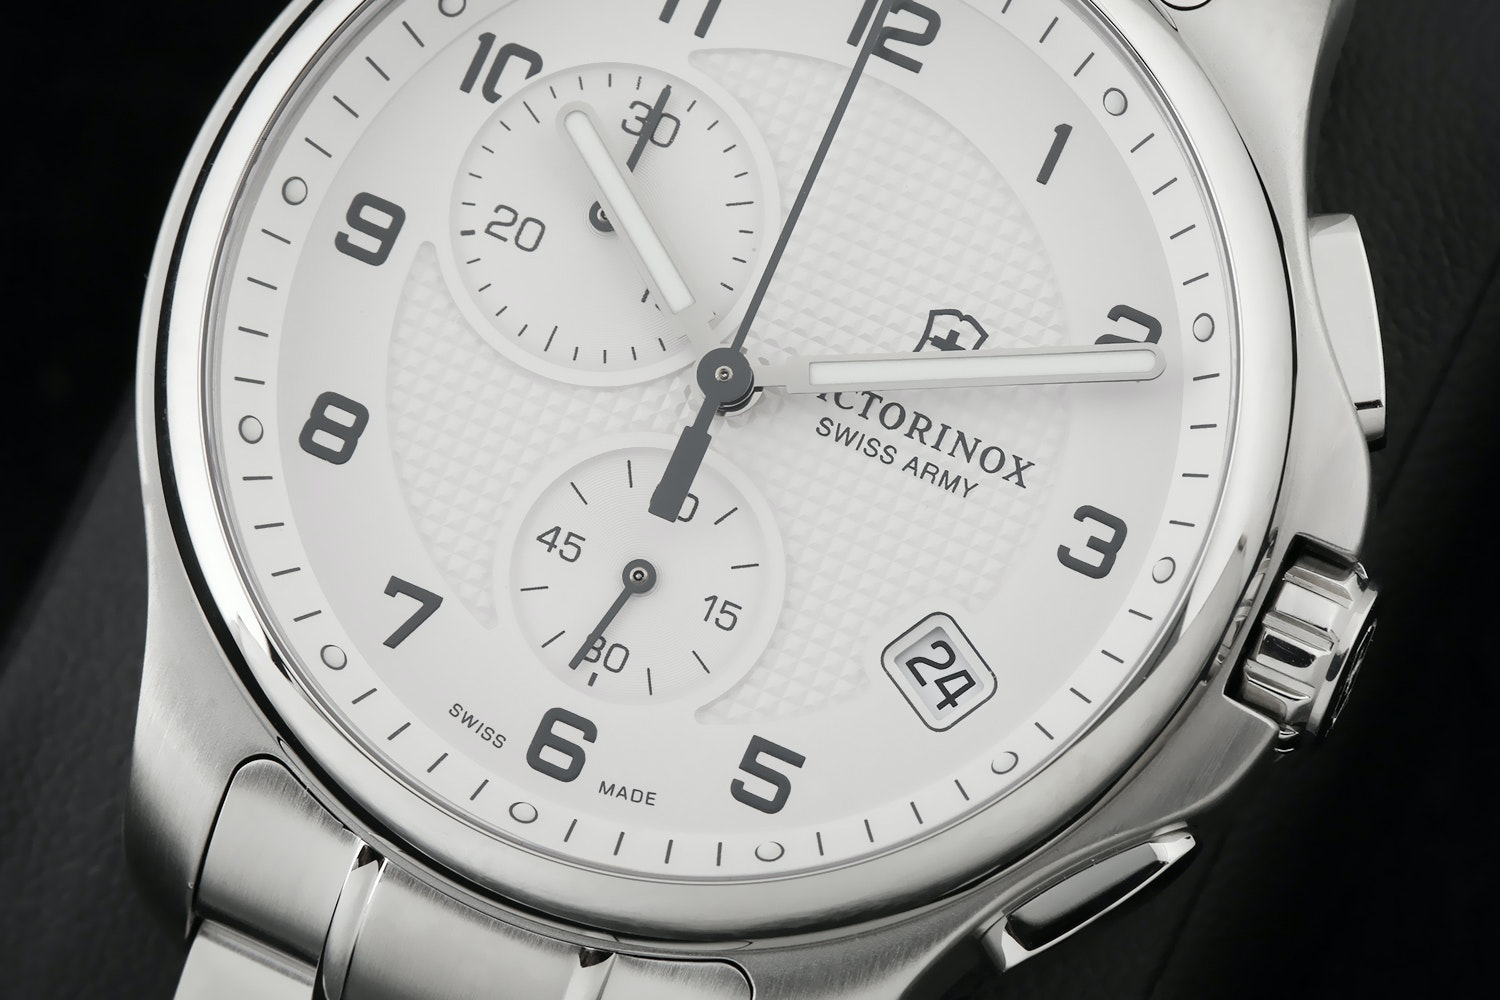 Victorinox Officer's Chronograph Watch